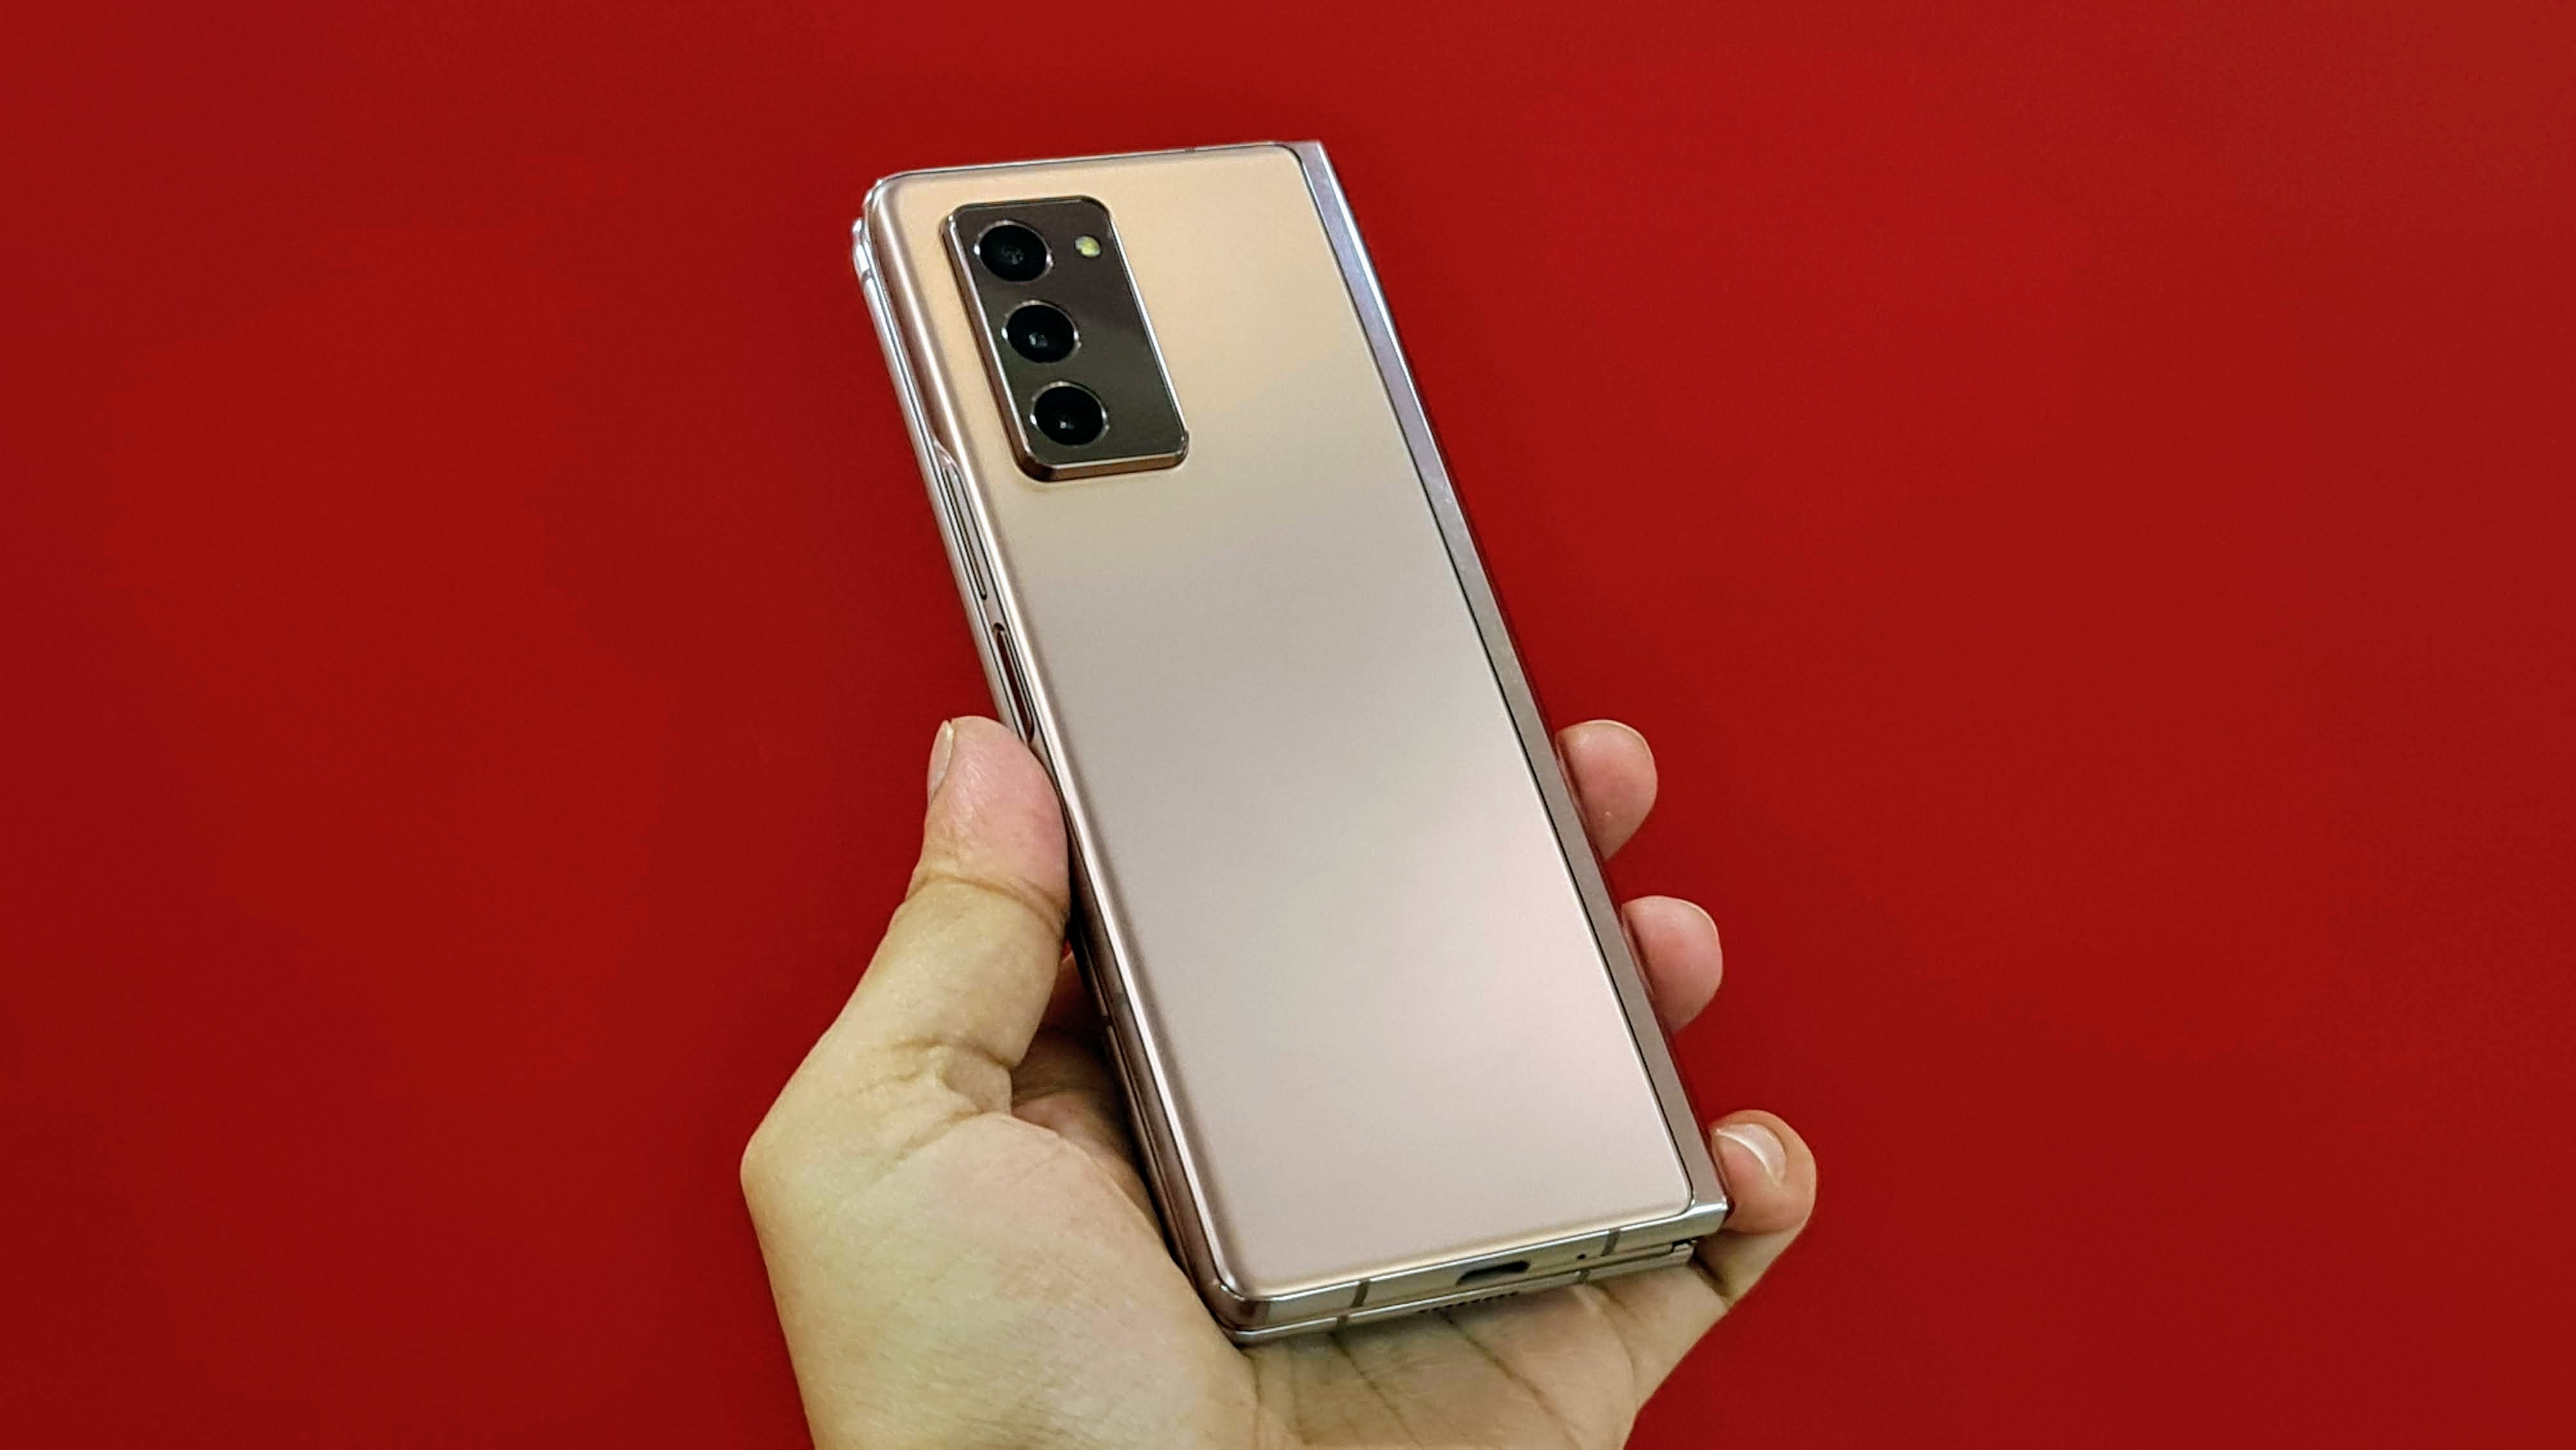 There's a triple rear camera setup consisting of a 12-megapixel telephoto lens, a 12-megapixel wide-angle lens with super speed dual pixel auto-focus and OIS, and a 12-megapixel ultra-wide-angle lens.